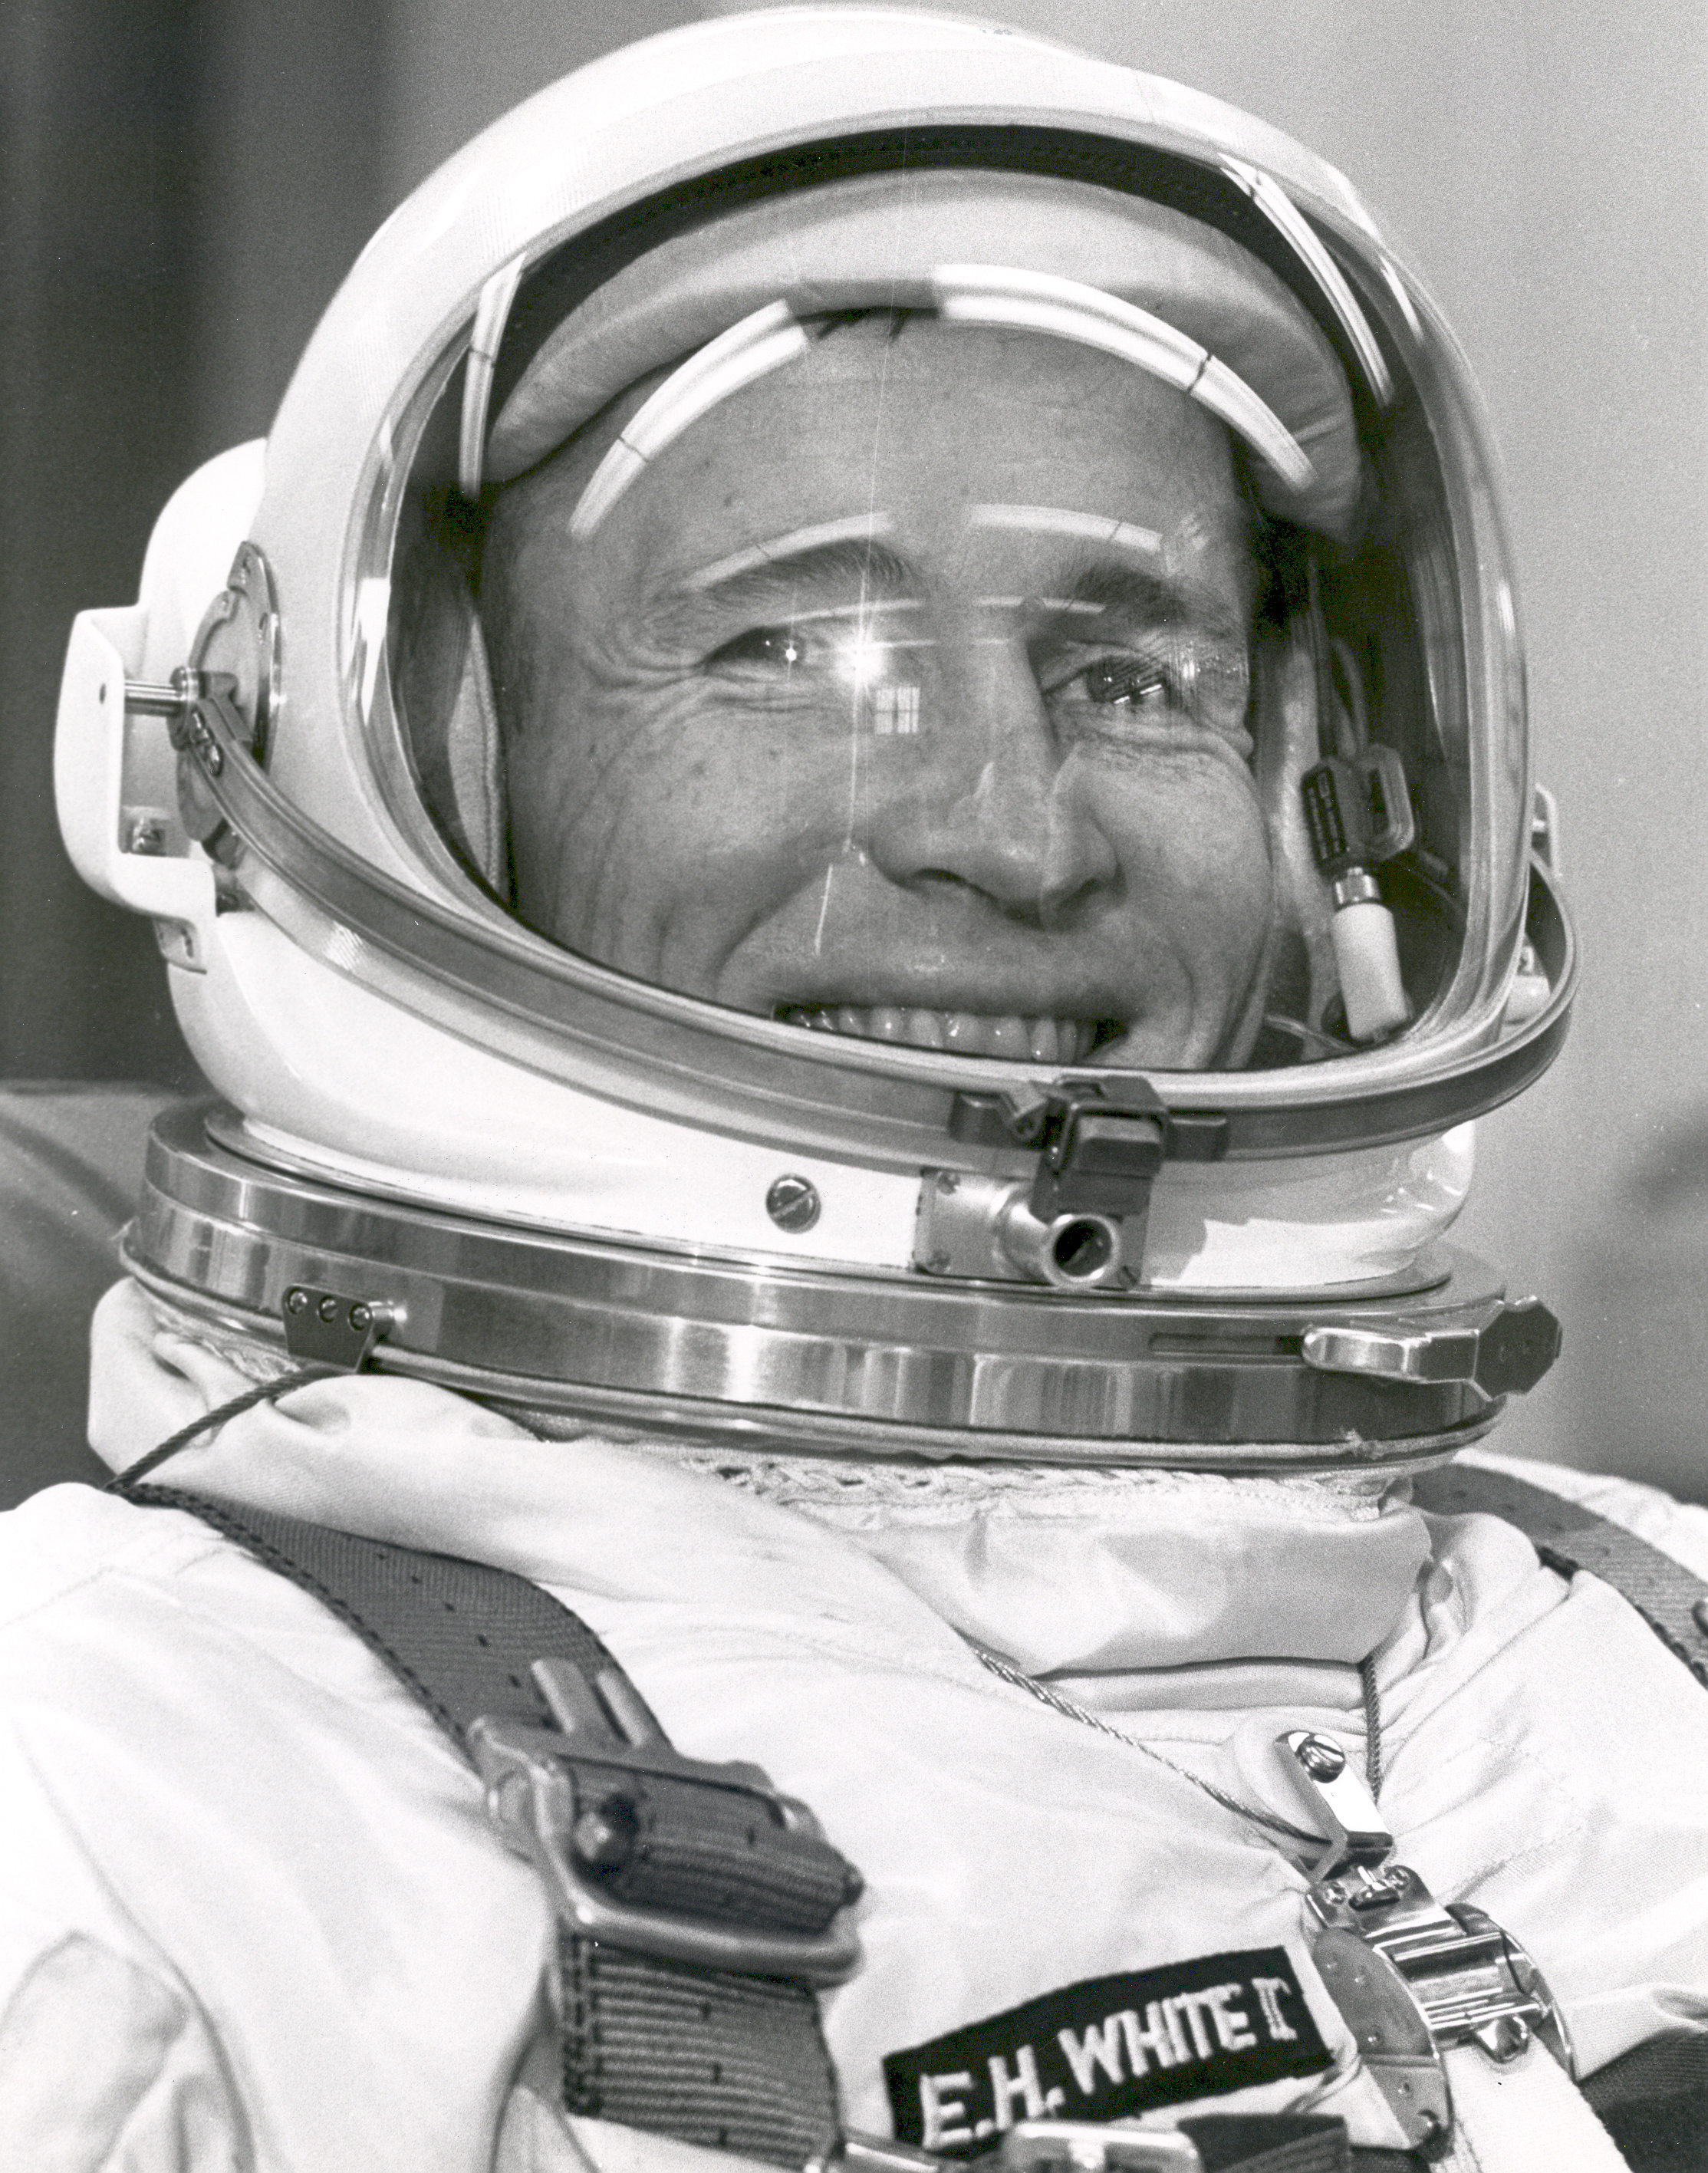 white apollo 1 astronaut - photo #25